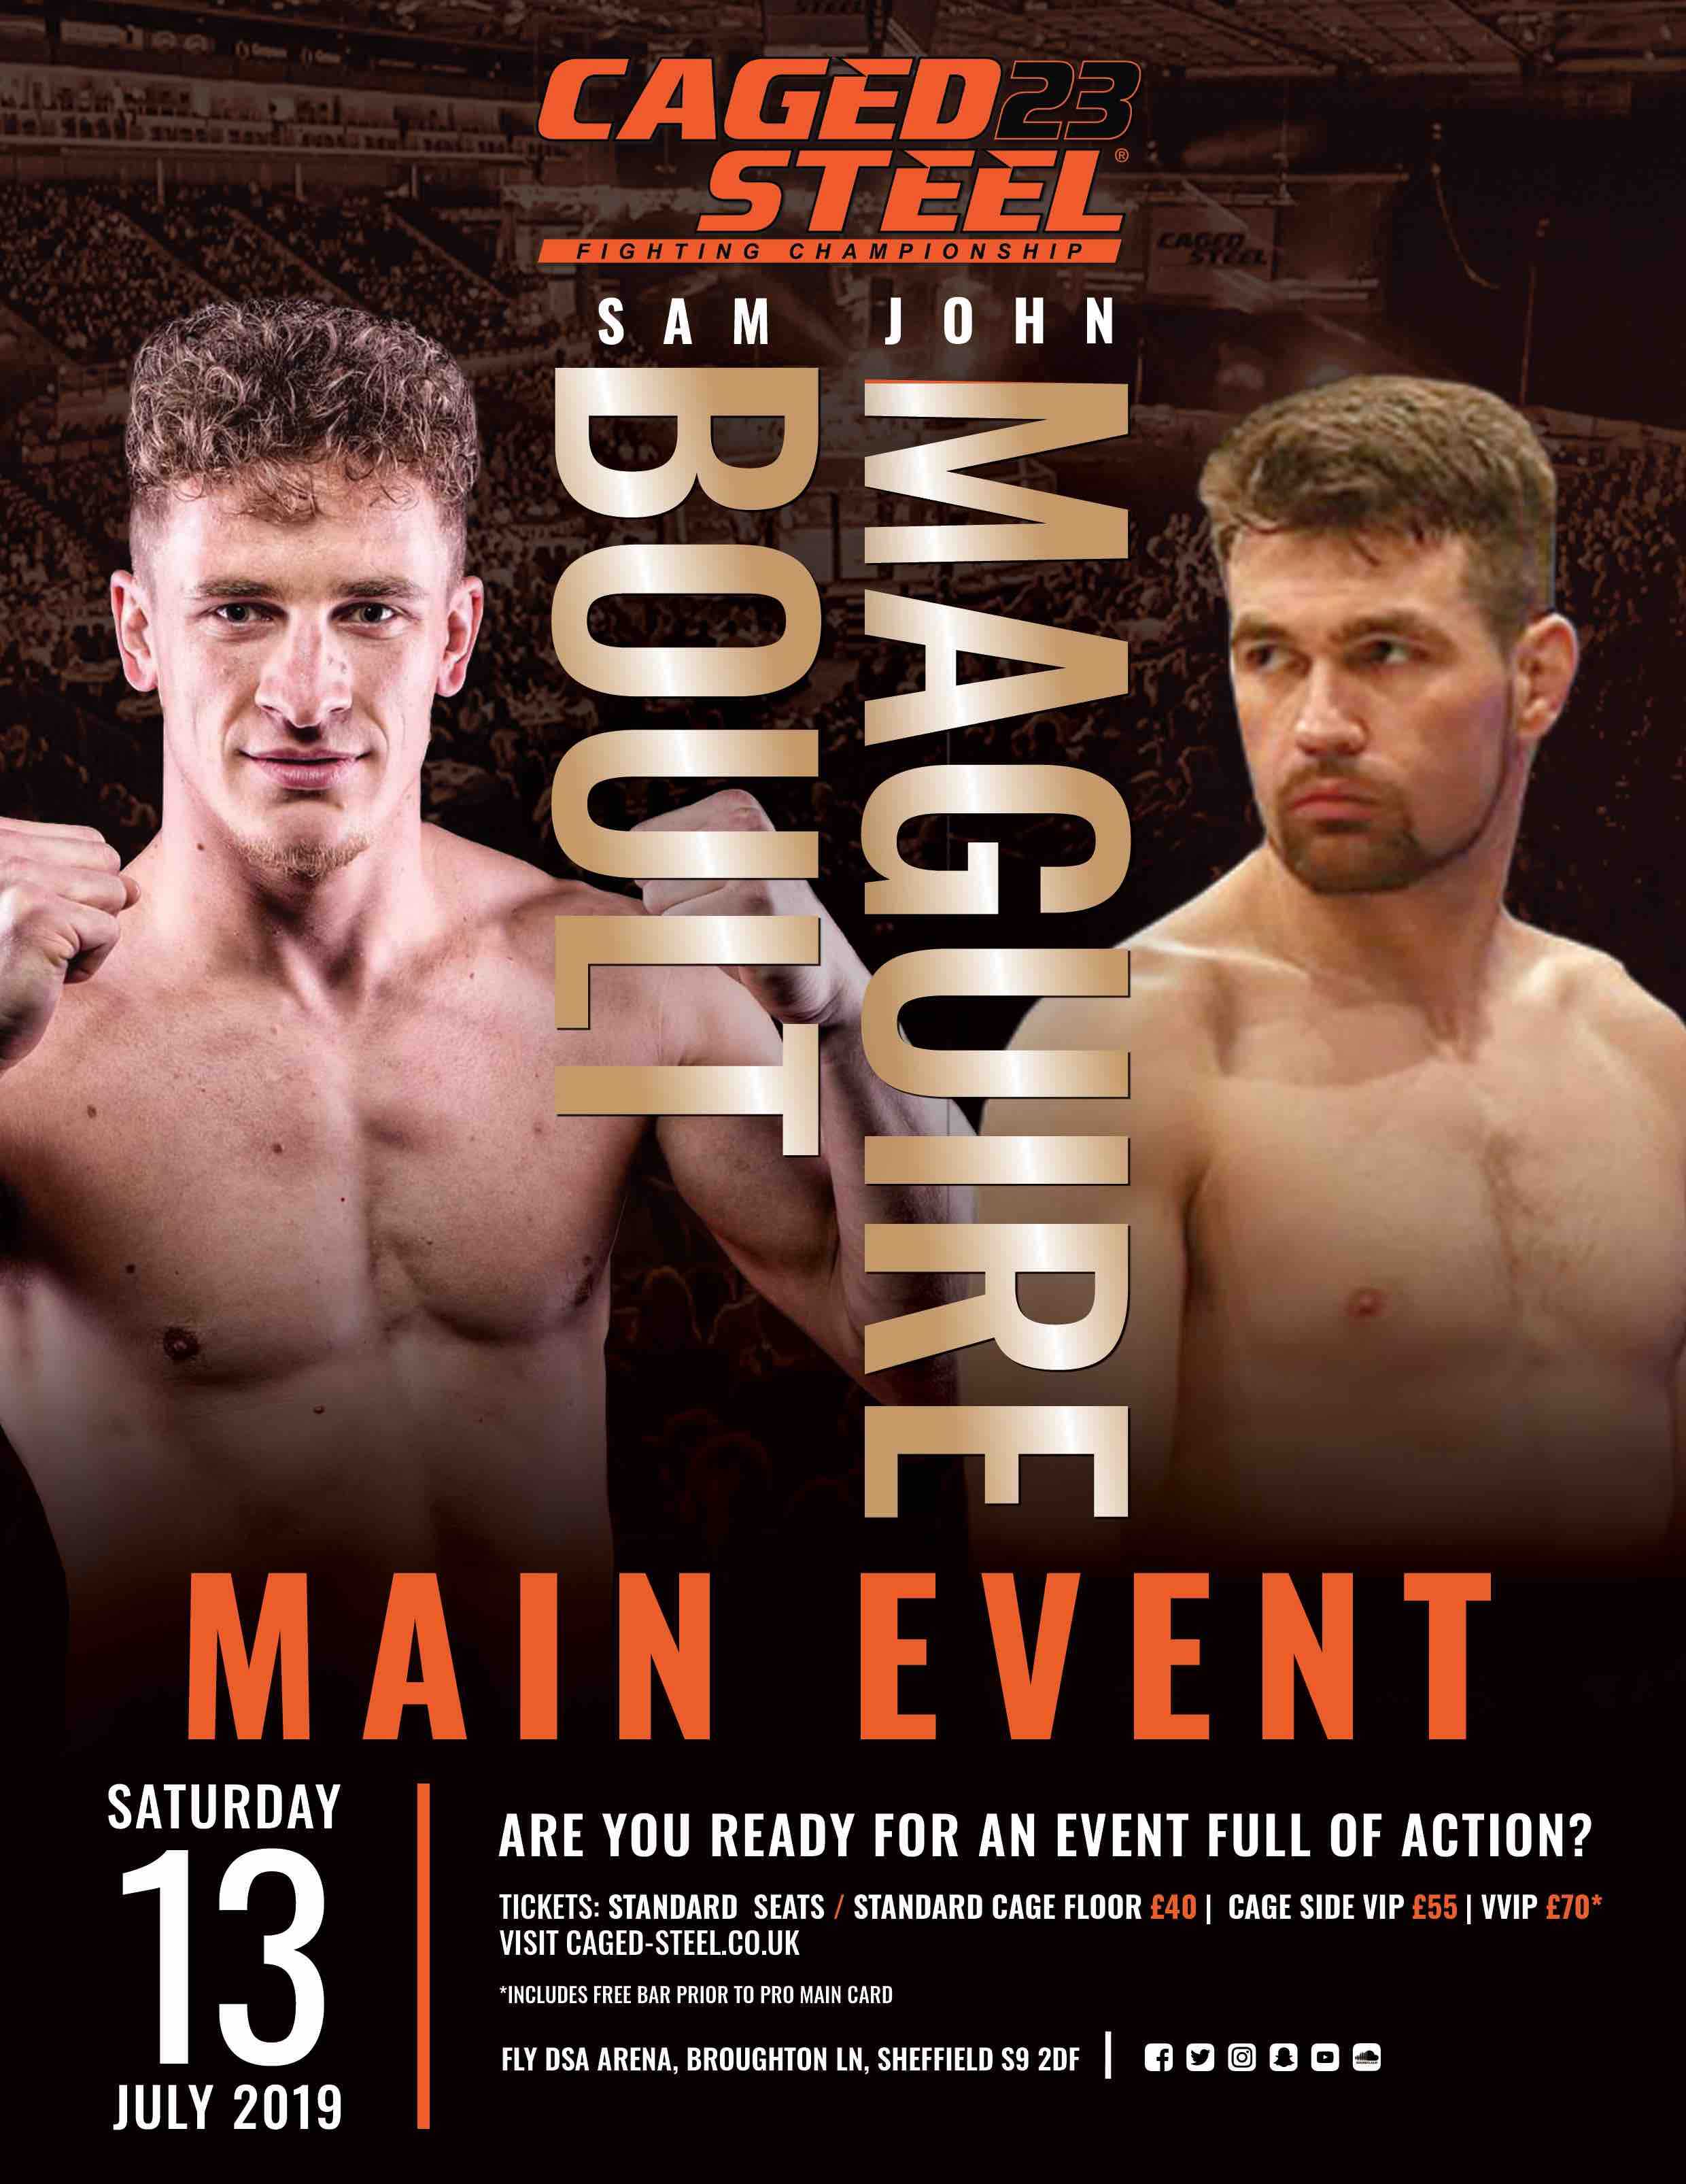 Caged-steel-main-event-sam-boult-vs-john-maguire-sheffield-arena